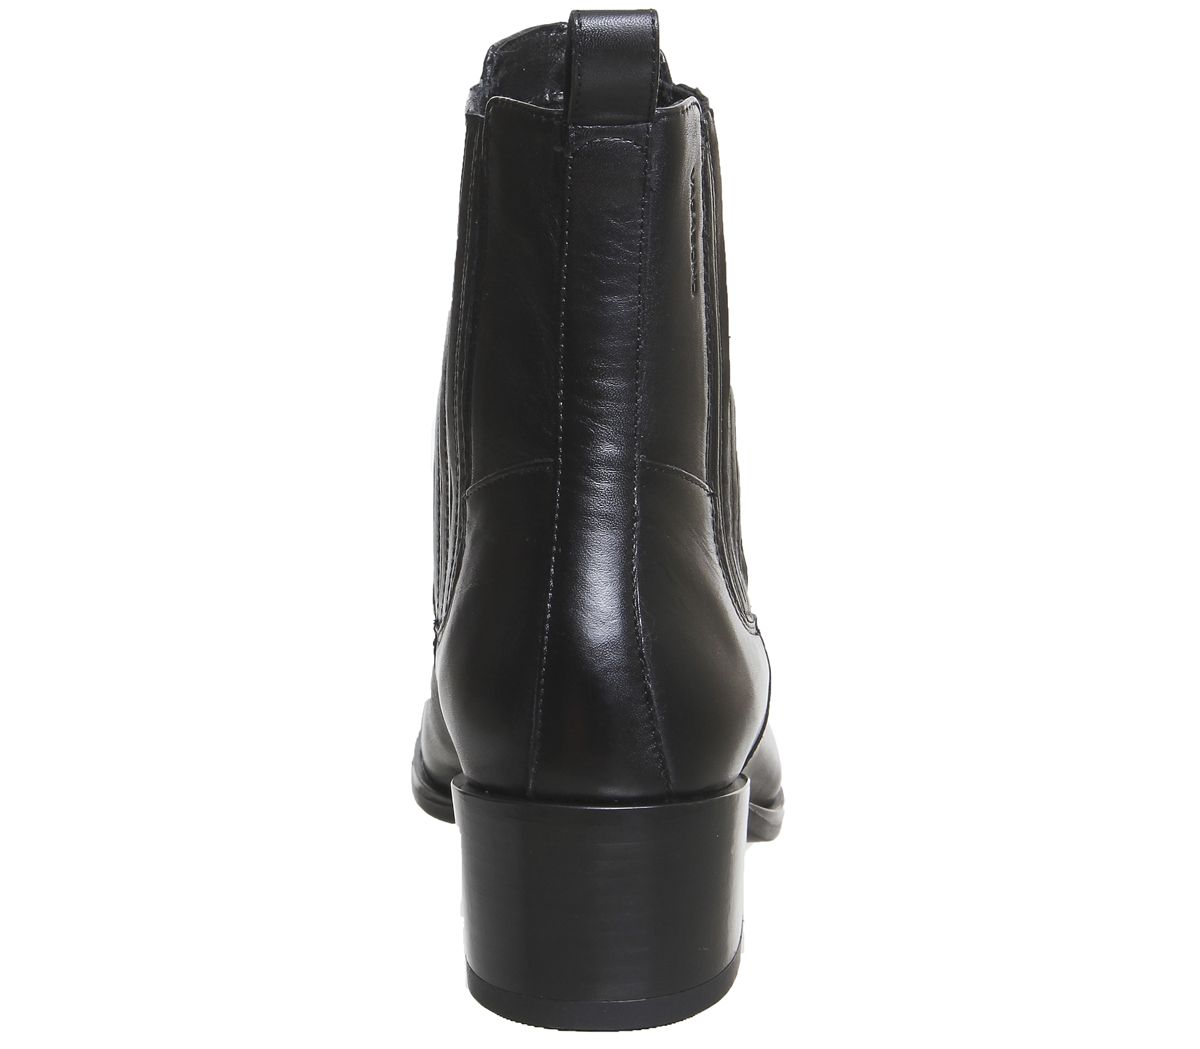 Womens-Vagabond-Marja-Chelsea-Boots-Black-Leather-Boots thumbnail 12